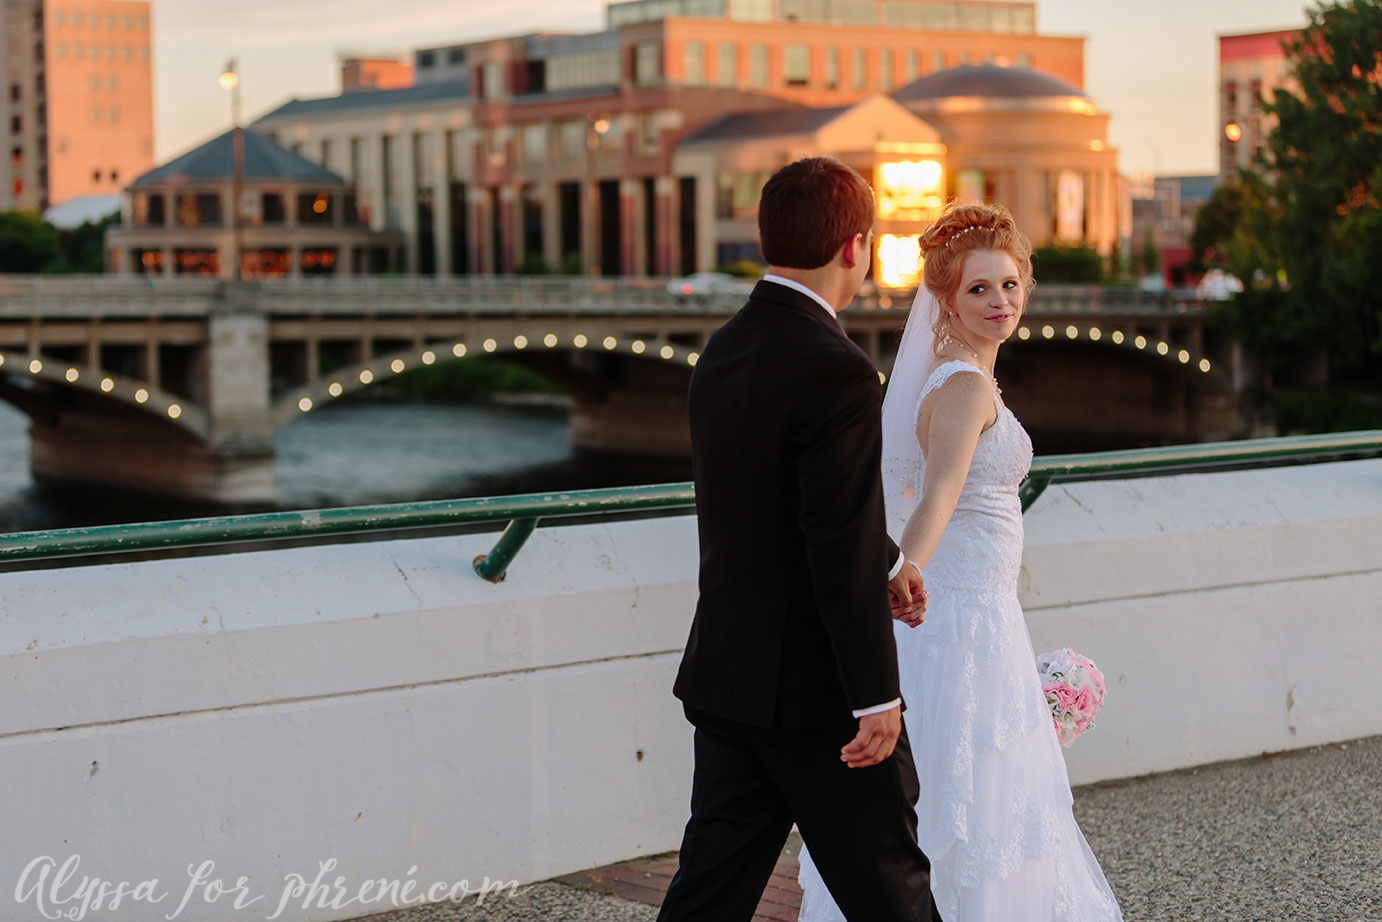 McKay_Tower_wedding_ (93 of 121).jpg